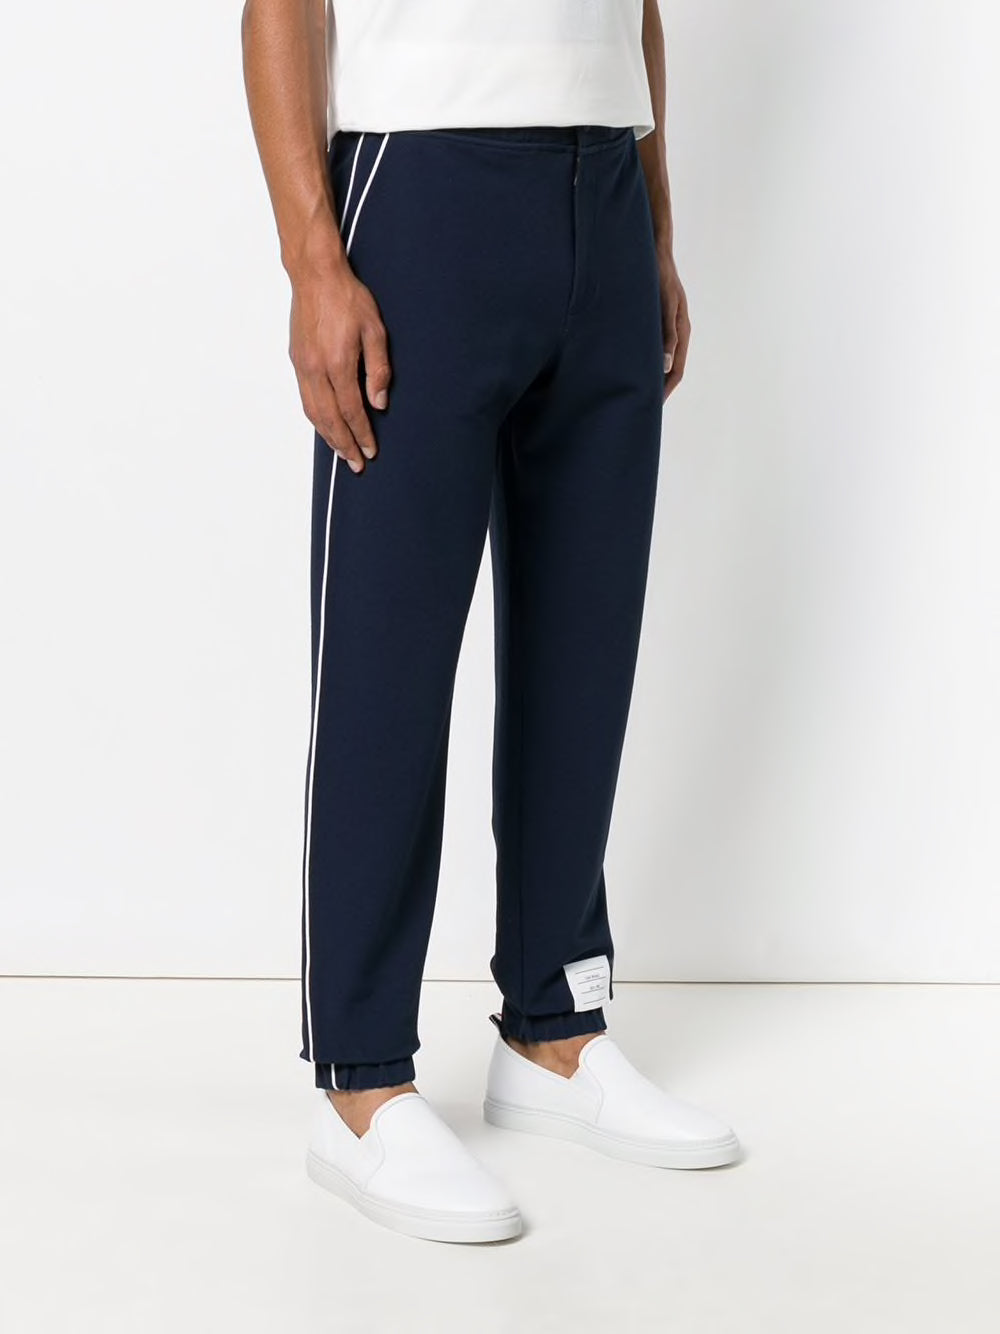 THOM BROWNE MEN SWEATPANTS IN TECH KNIT WITH PIPING